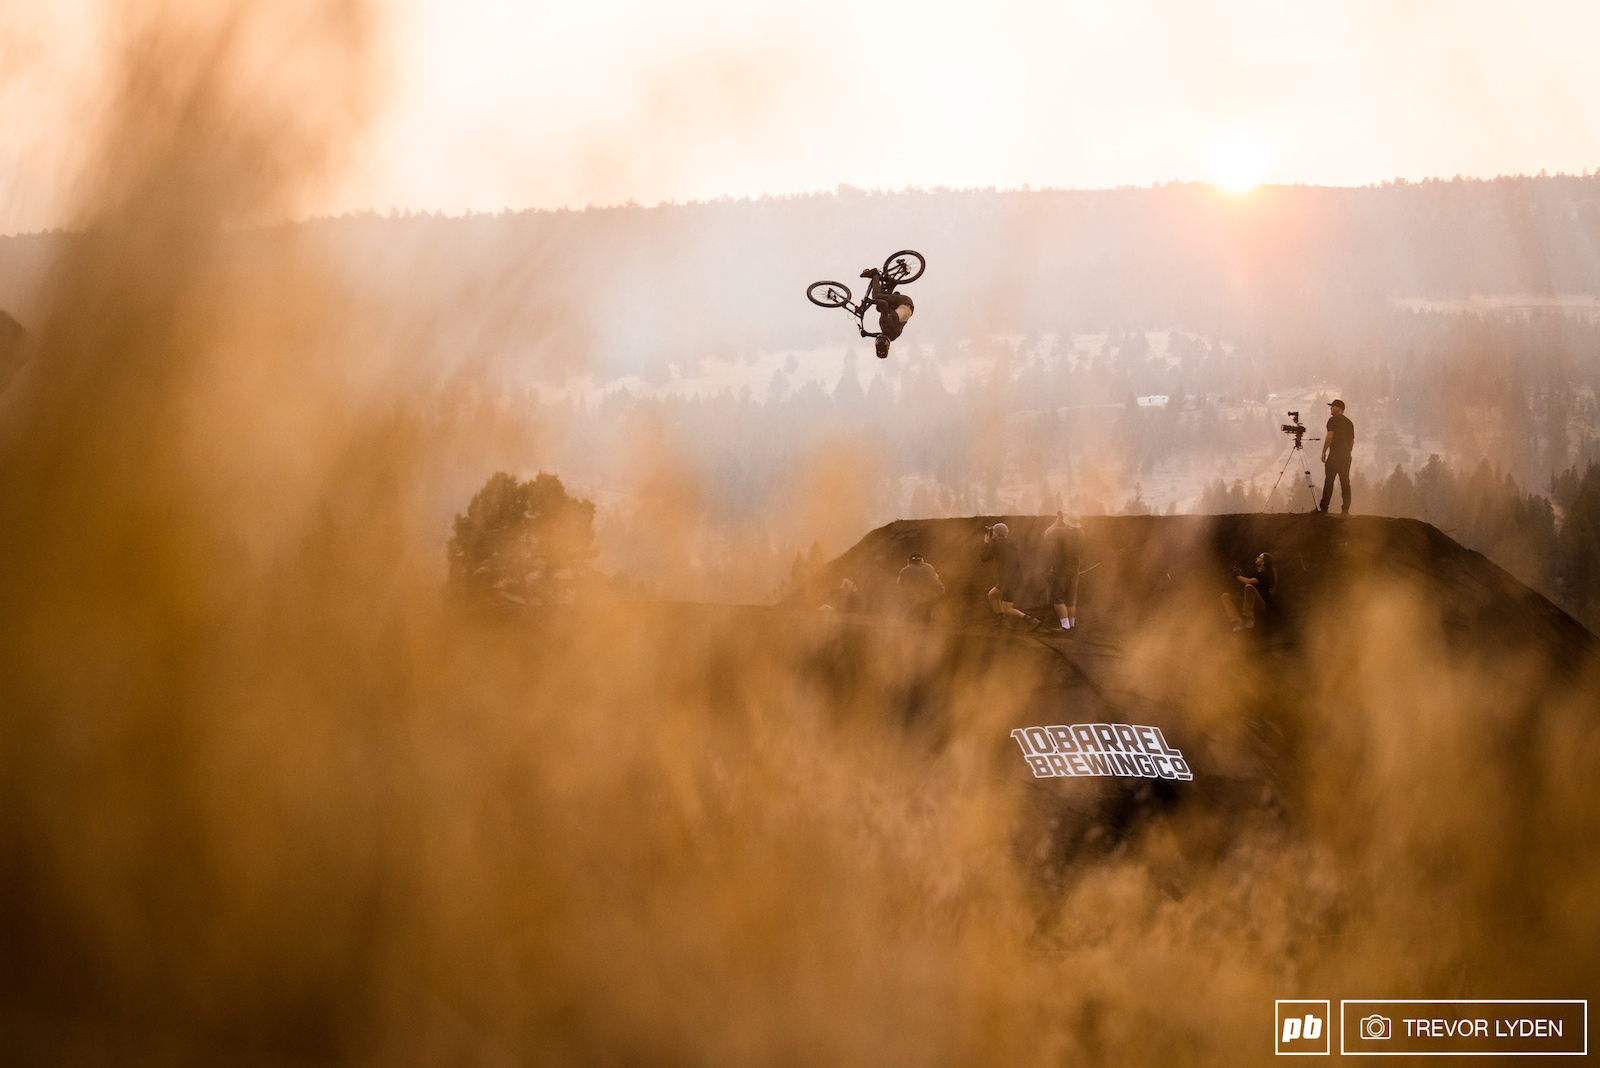 Brandon Semenuk showed up to ride with the crew and hang out for the evening.